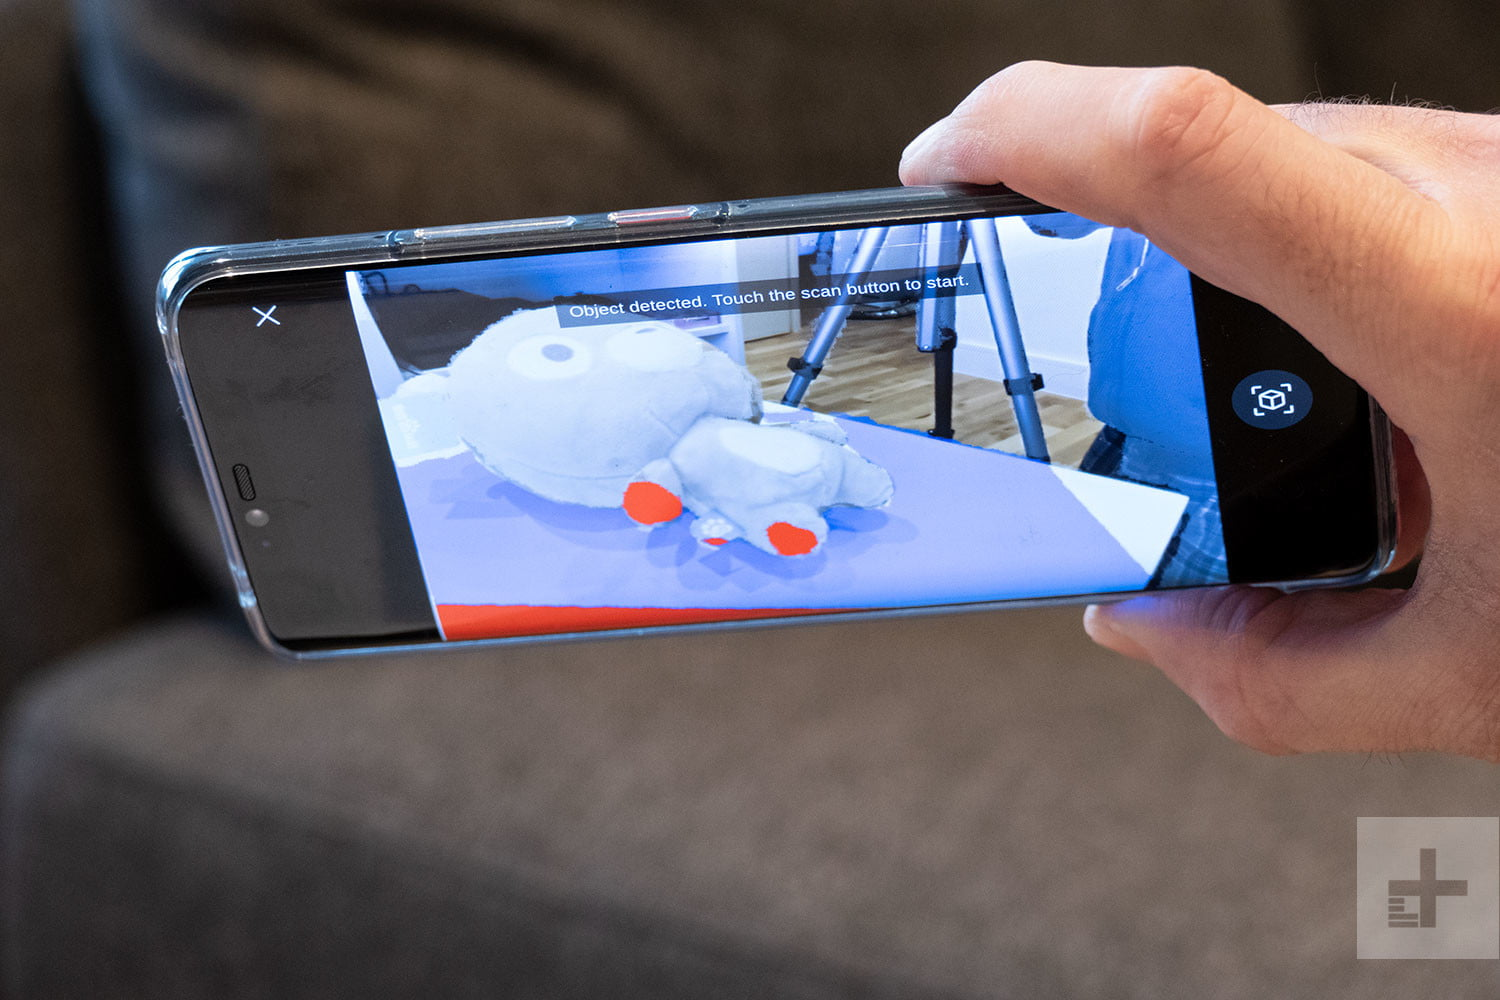 How To Use The 3D Live Maker App On The Mate 20 Pro